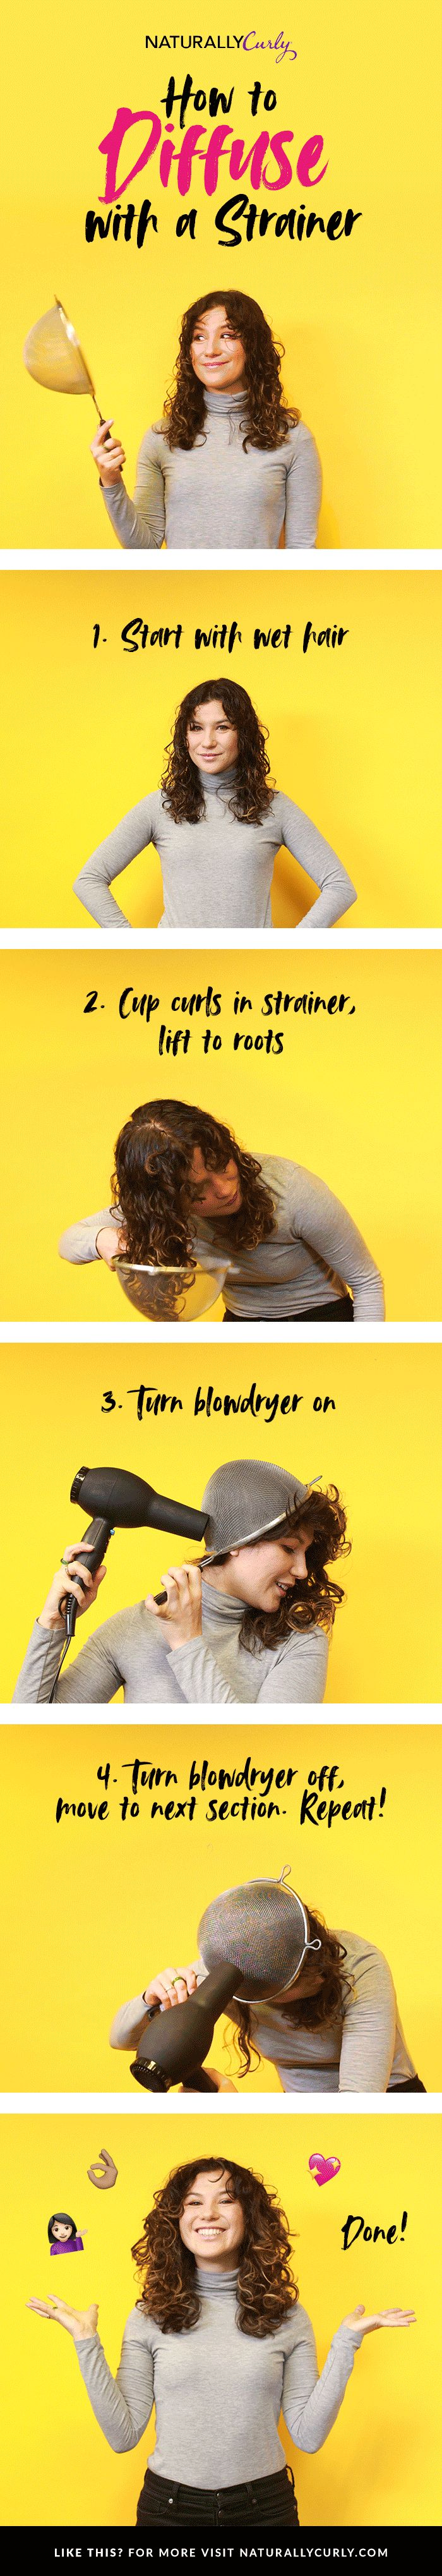 How to diffuse with a strainer!